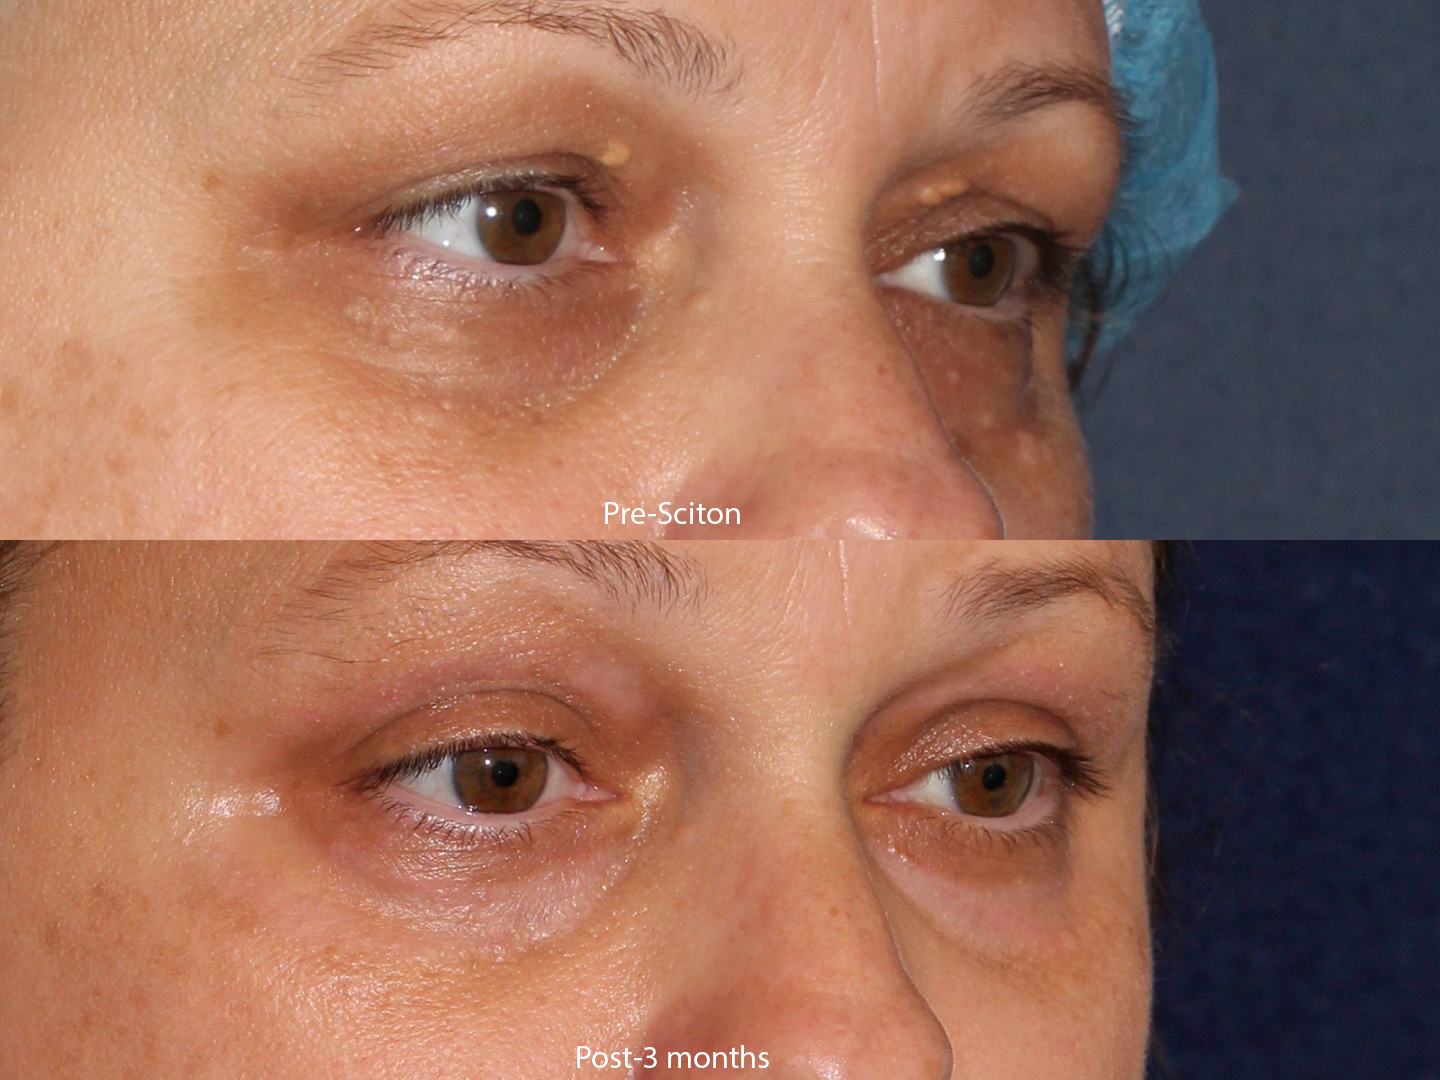 Actual un-retouched patient before and after of Sciton laser treatment for xanthomas and under-eye pigmentation by Dr. Goldman. Disclaimer: Results may vary from patient to patient. Results are not guaranteed.